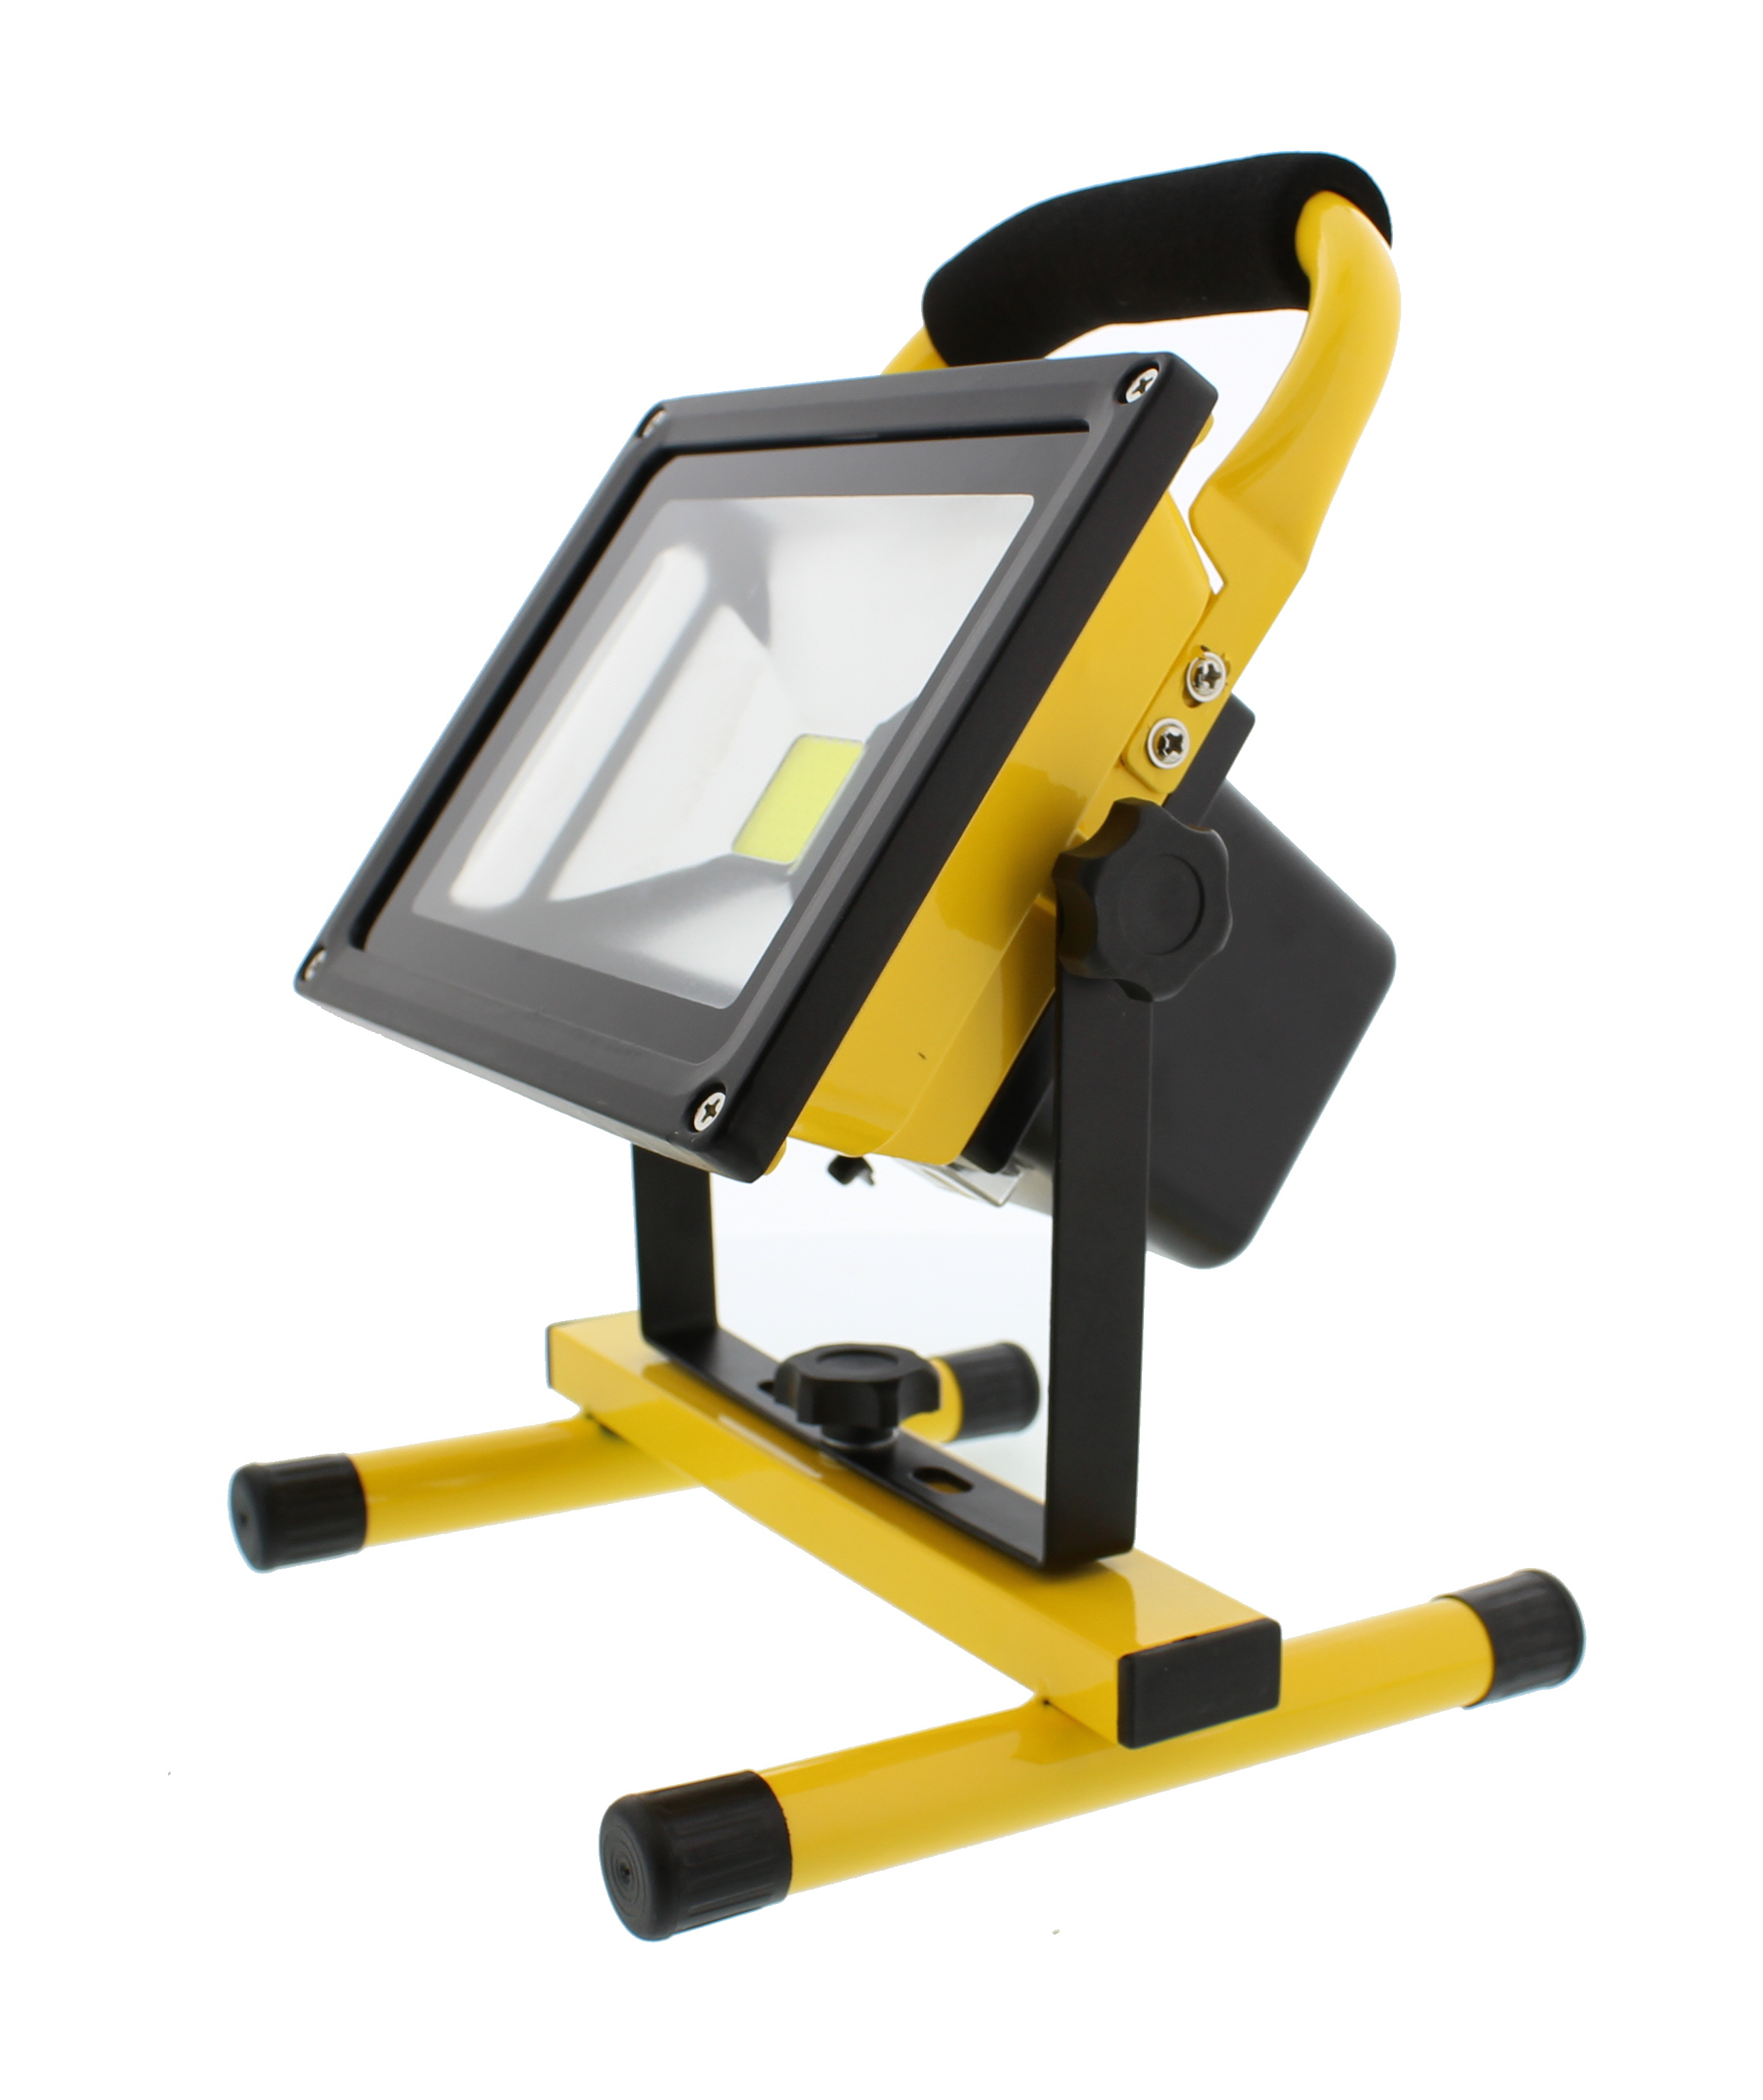 Portable Outdoor 5w Led Rechargeable Work Garage Flood: ABN LED Flood Light 20W Rechargeable Portable Worklight